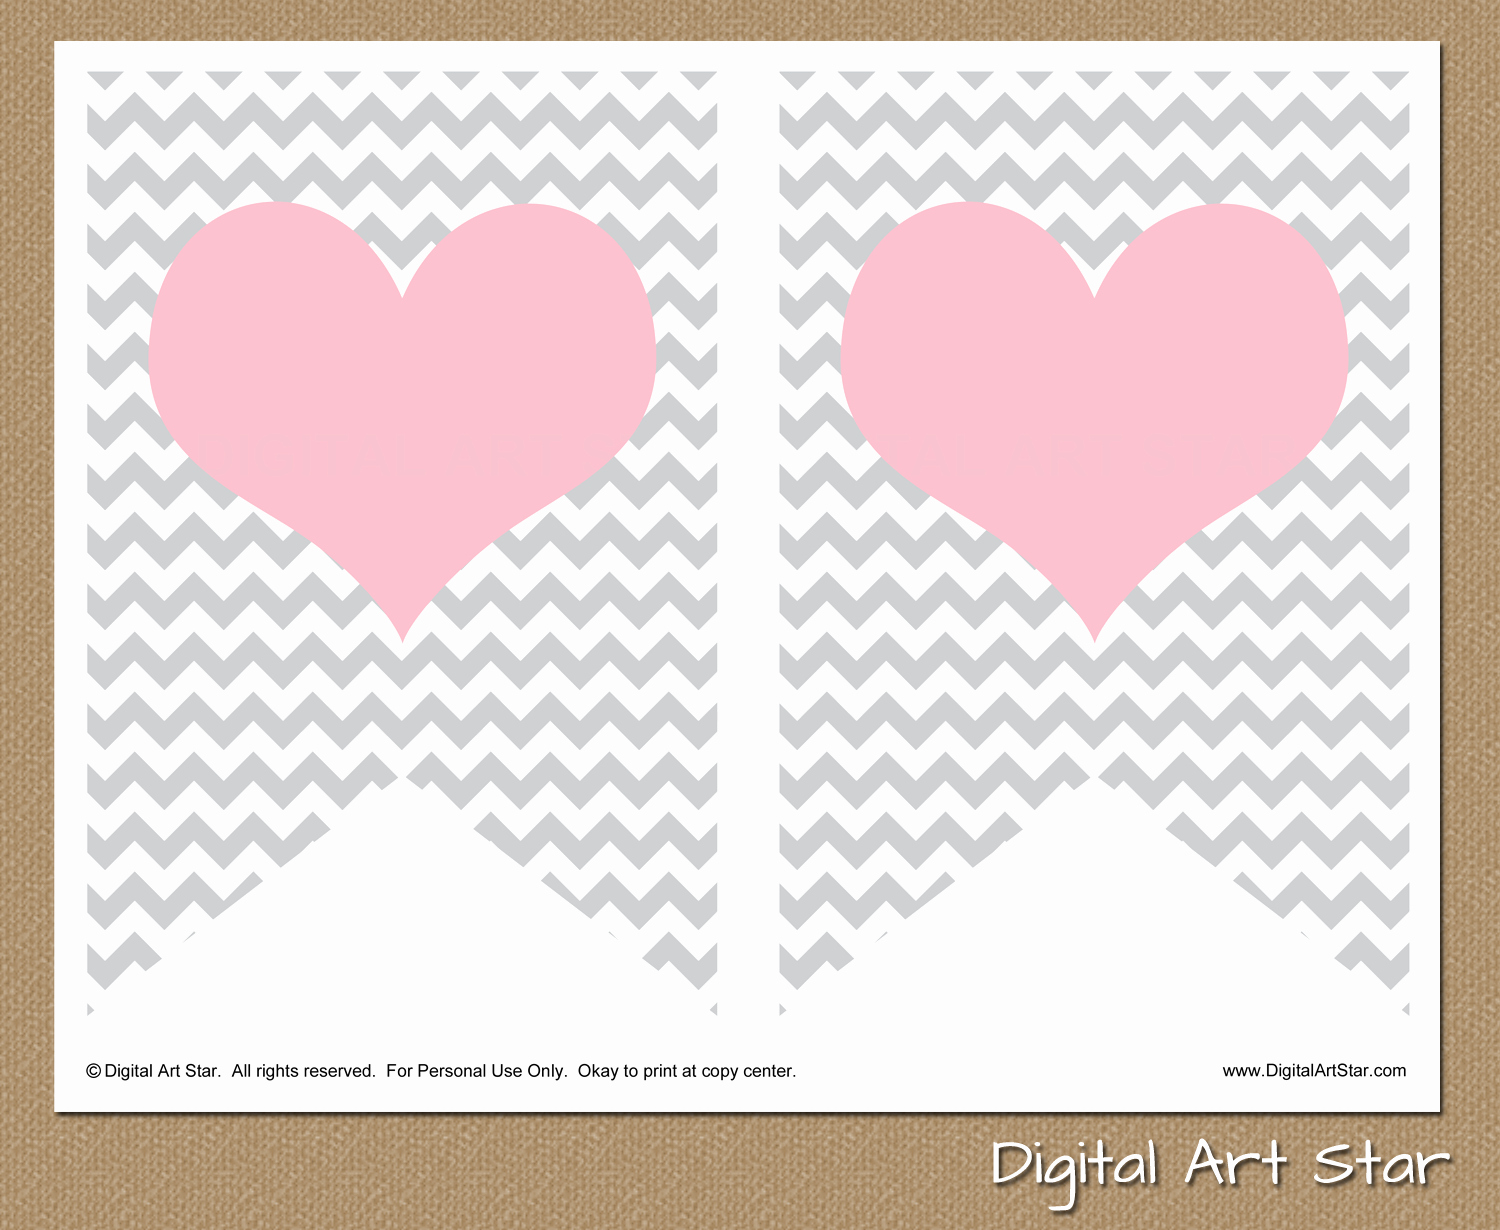 Baby Shower Banner Printable Beautiful Digital Art Star Printable Party Decor Diy Printable It